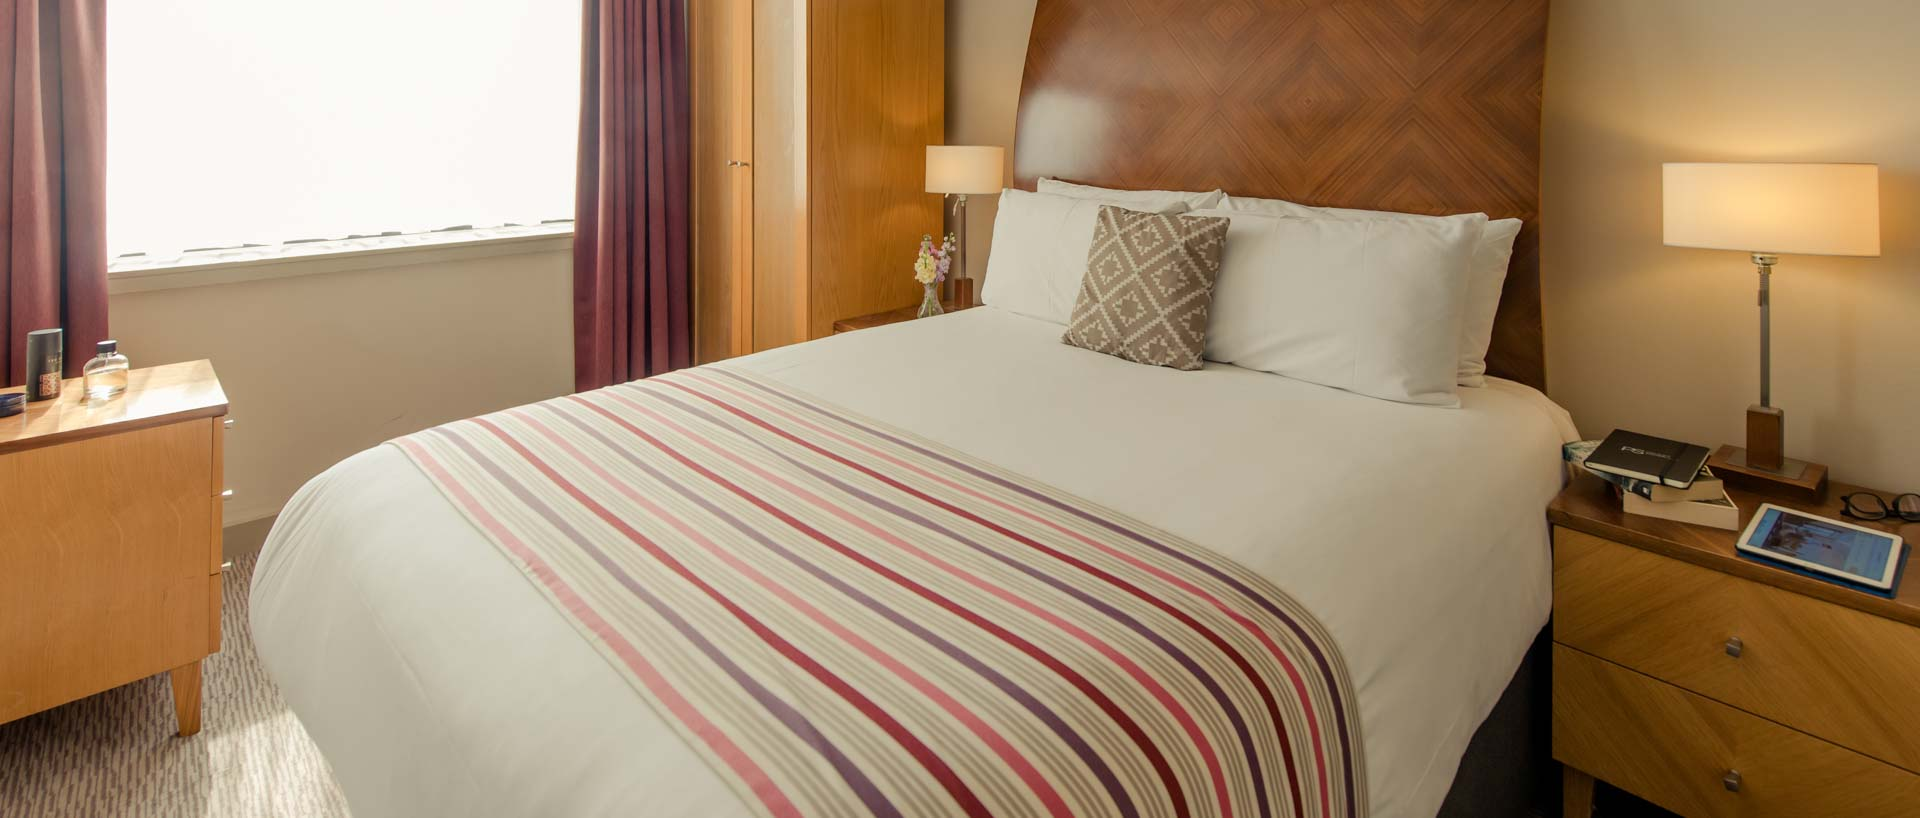 PREMIER SUITES Manchester double bed